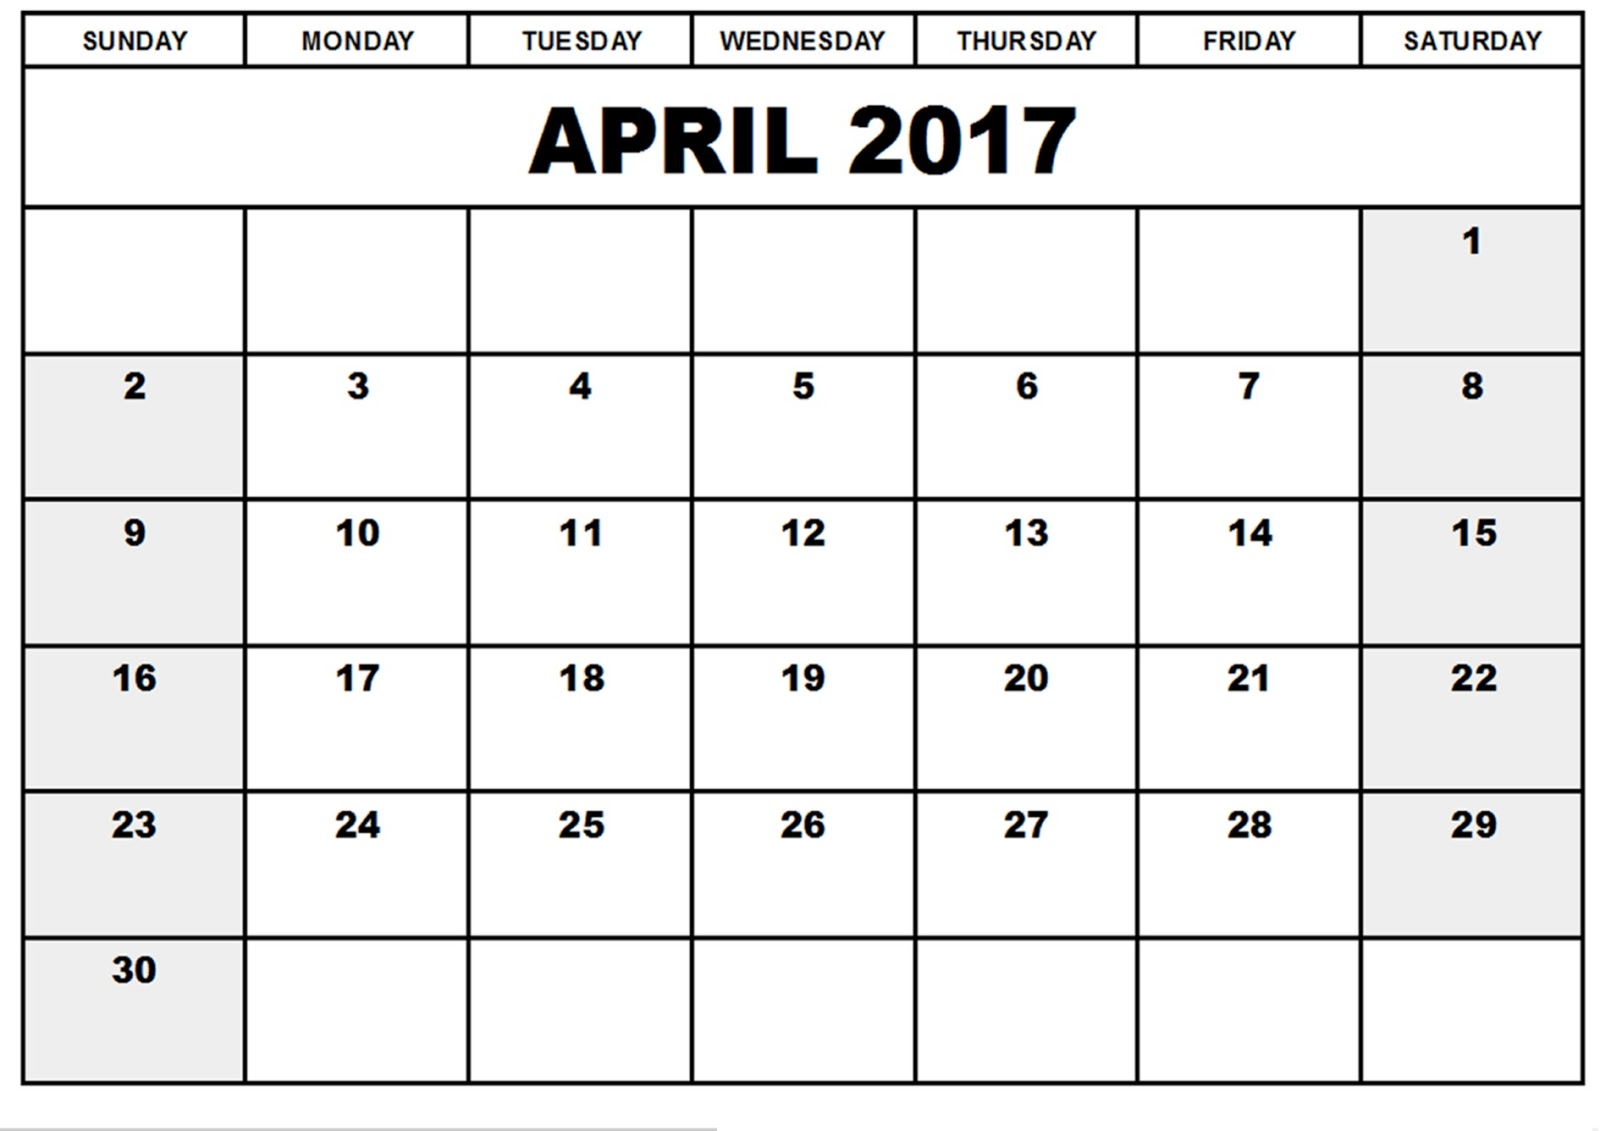 April Calendar Blank Template : April calendar printable blank templates